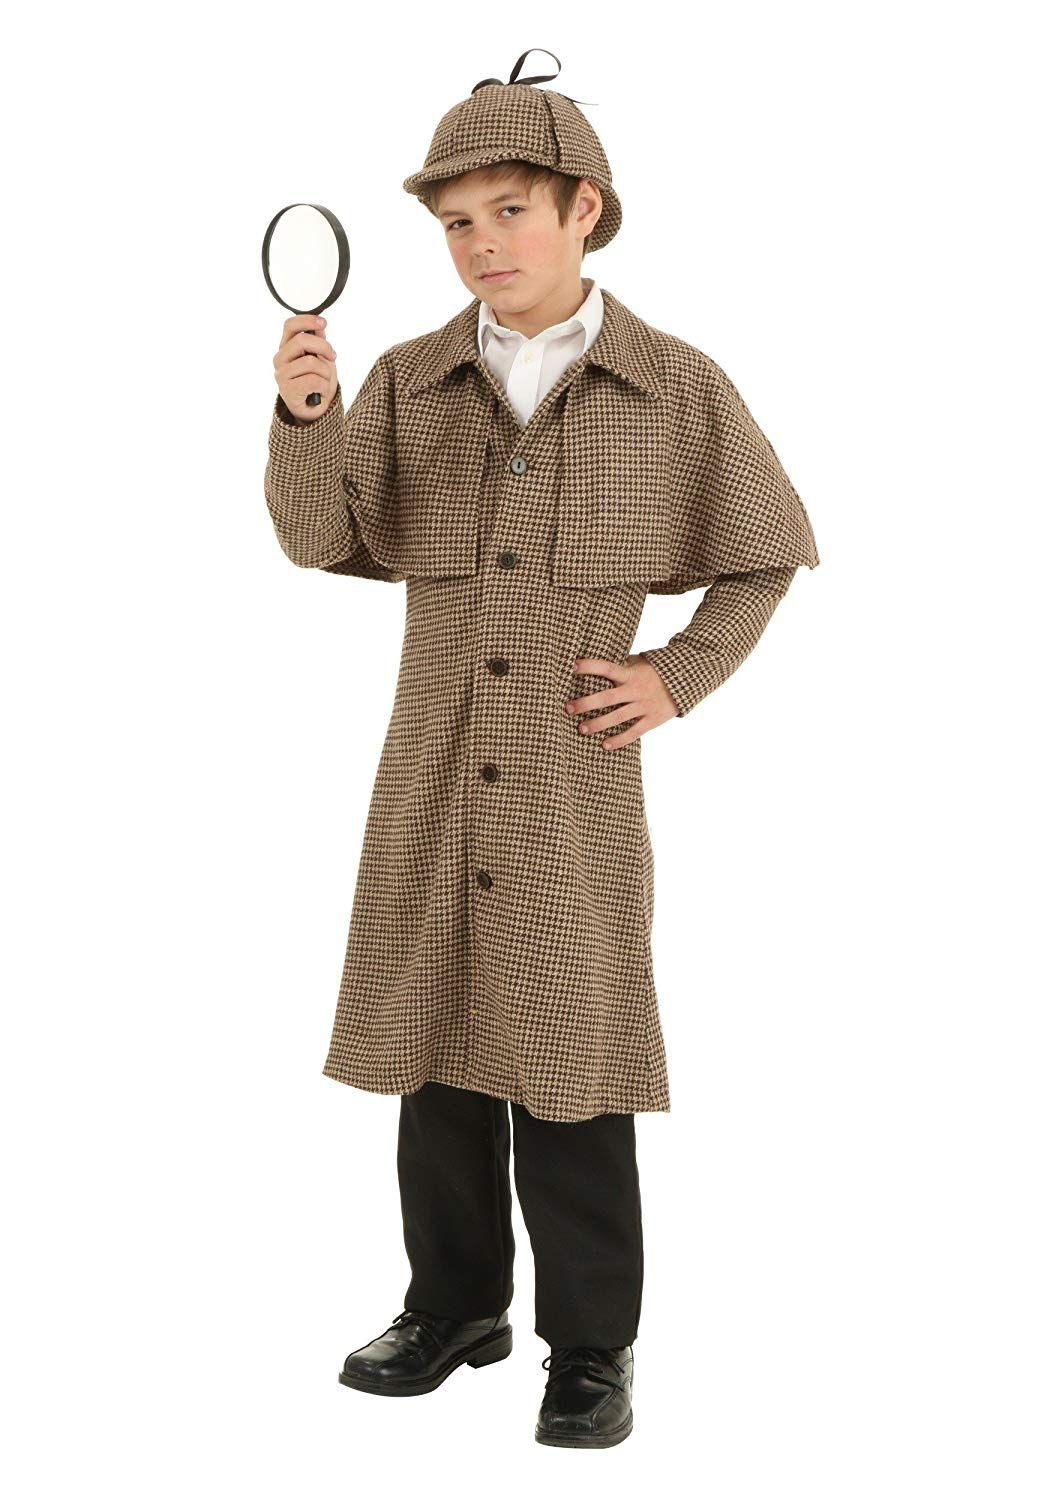 sherlock holmes boys halloween costume  sc 1 st  Womanu0027s Day & 18 Best Boysu0027 Halloween Costumes for 2018 - Cool Costume Ideas for Boys